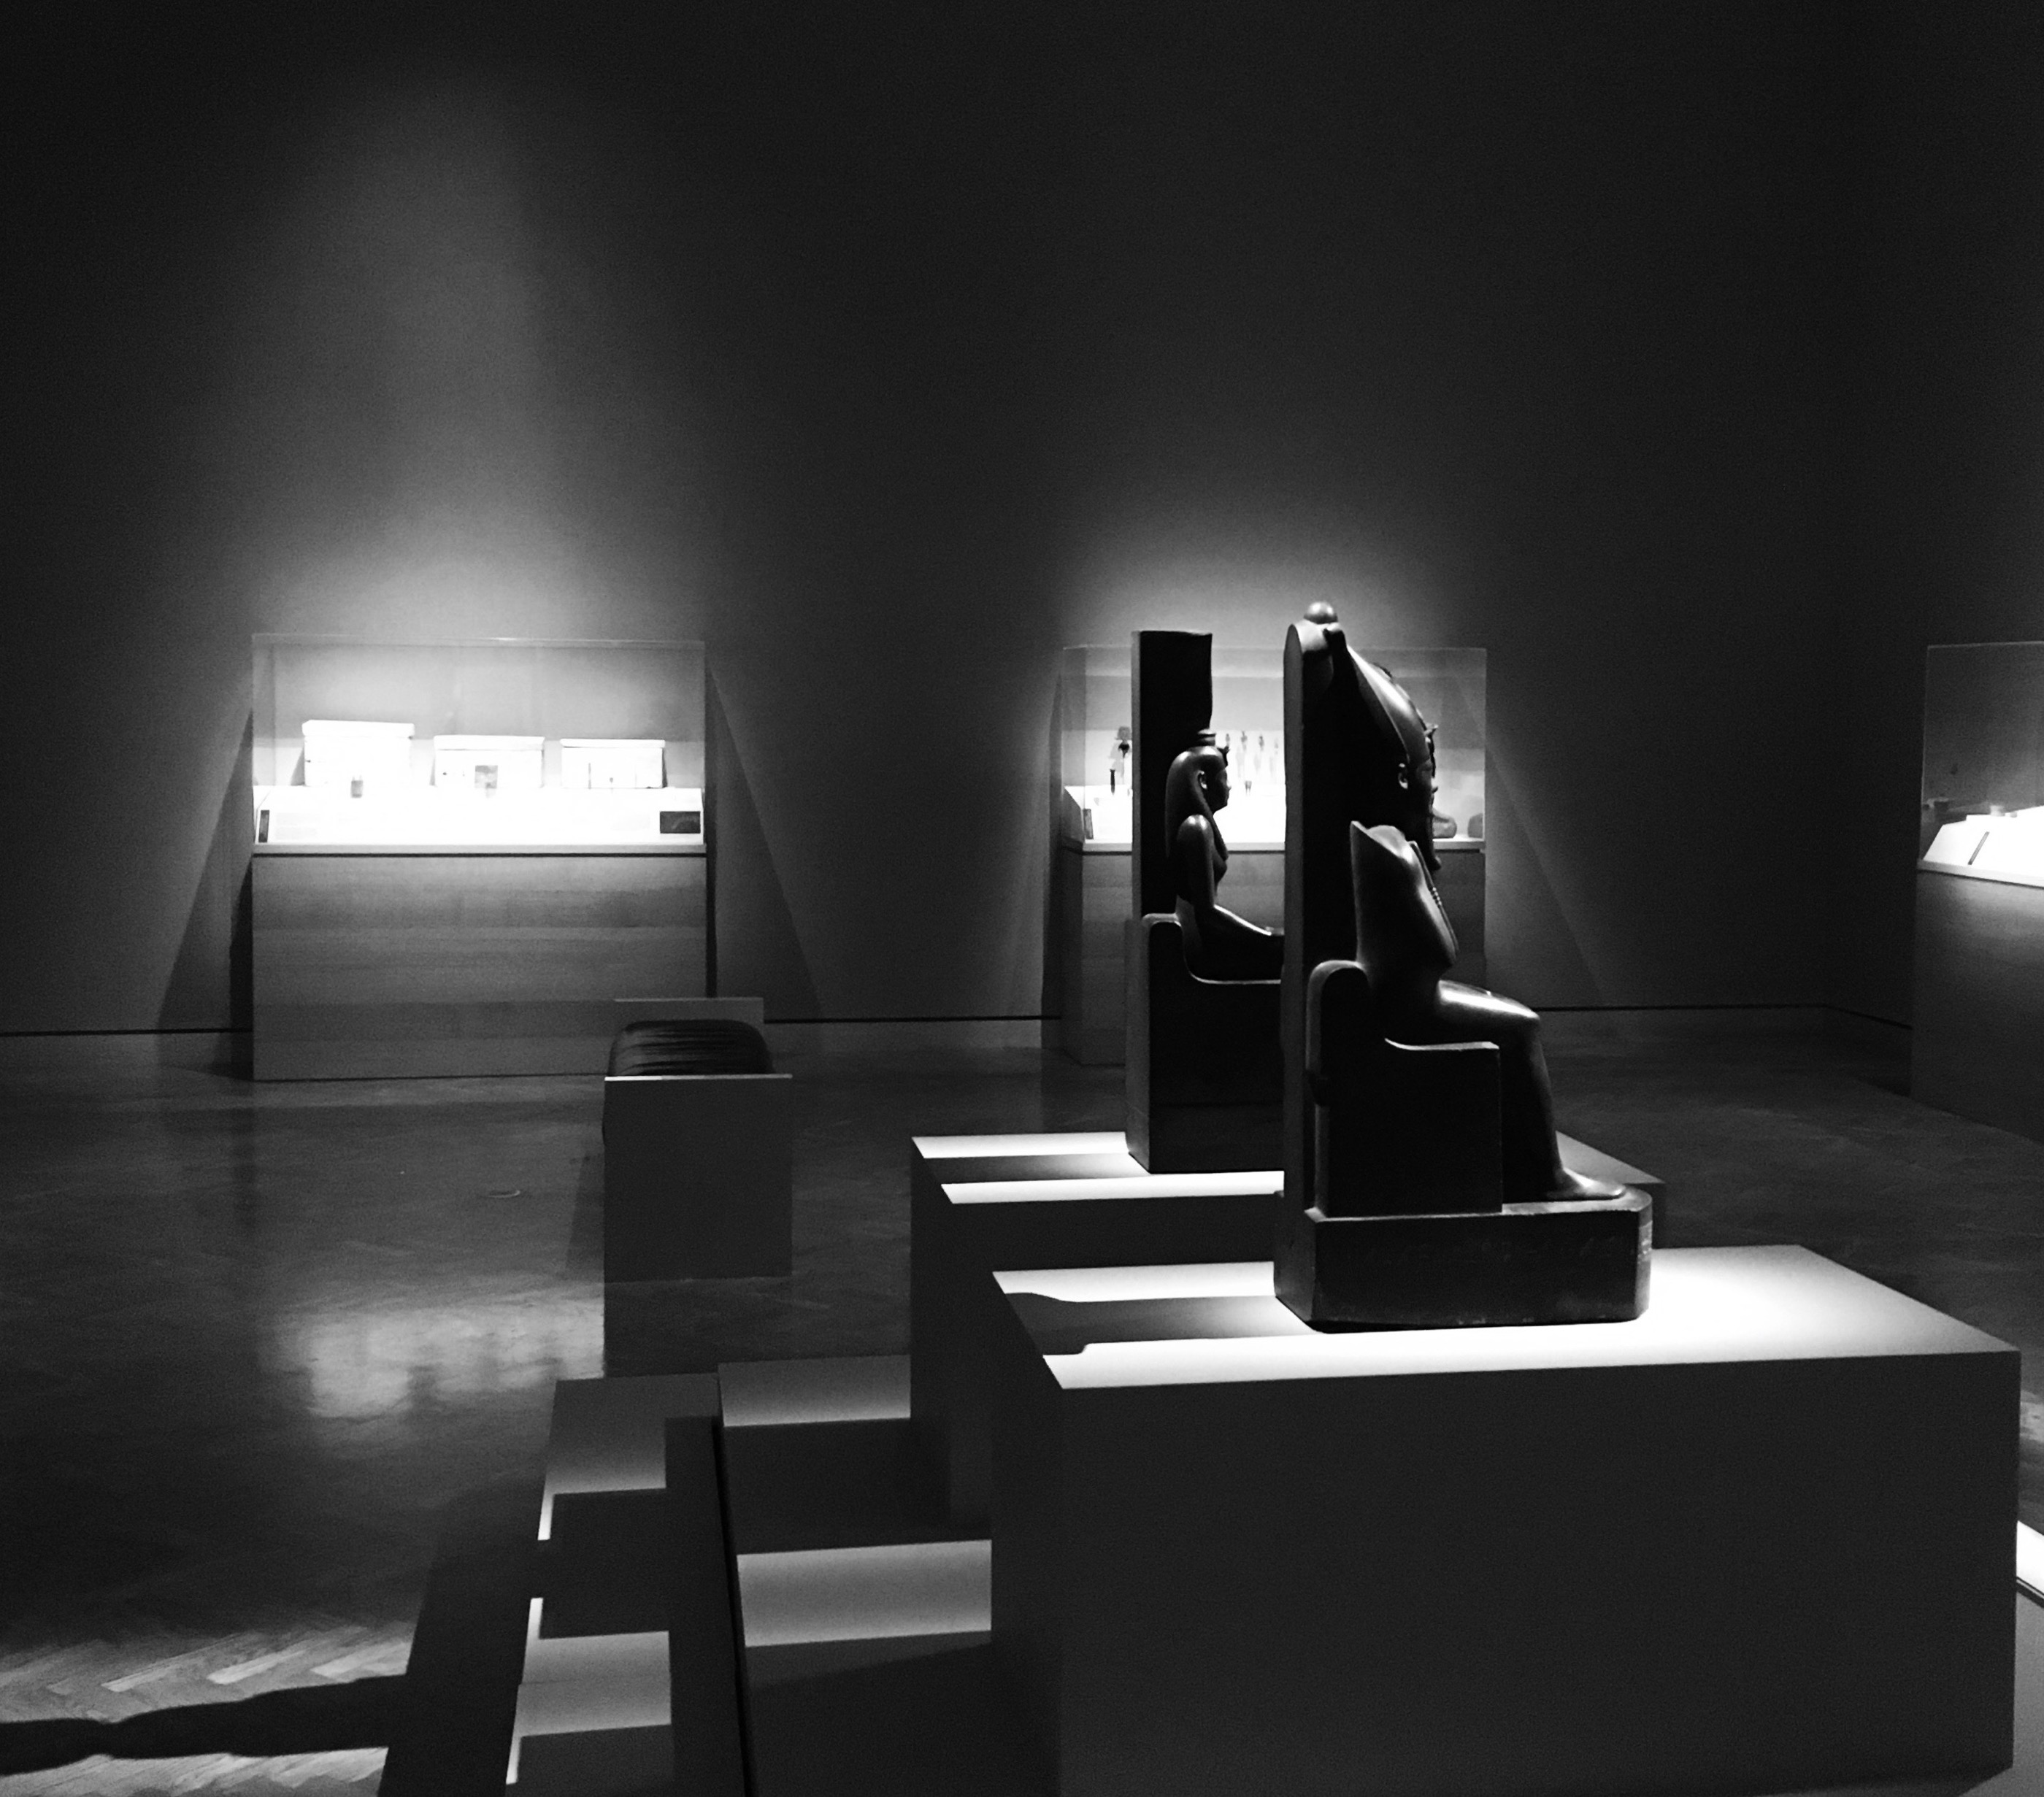 Small statues of Osiris and Isis in a dimly lit gallery with stark lighting